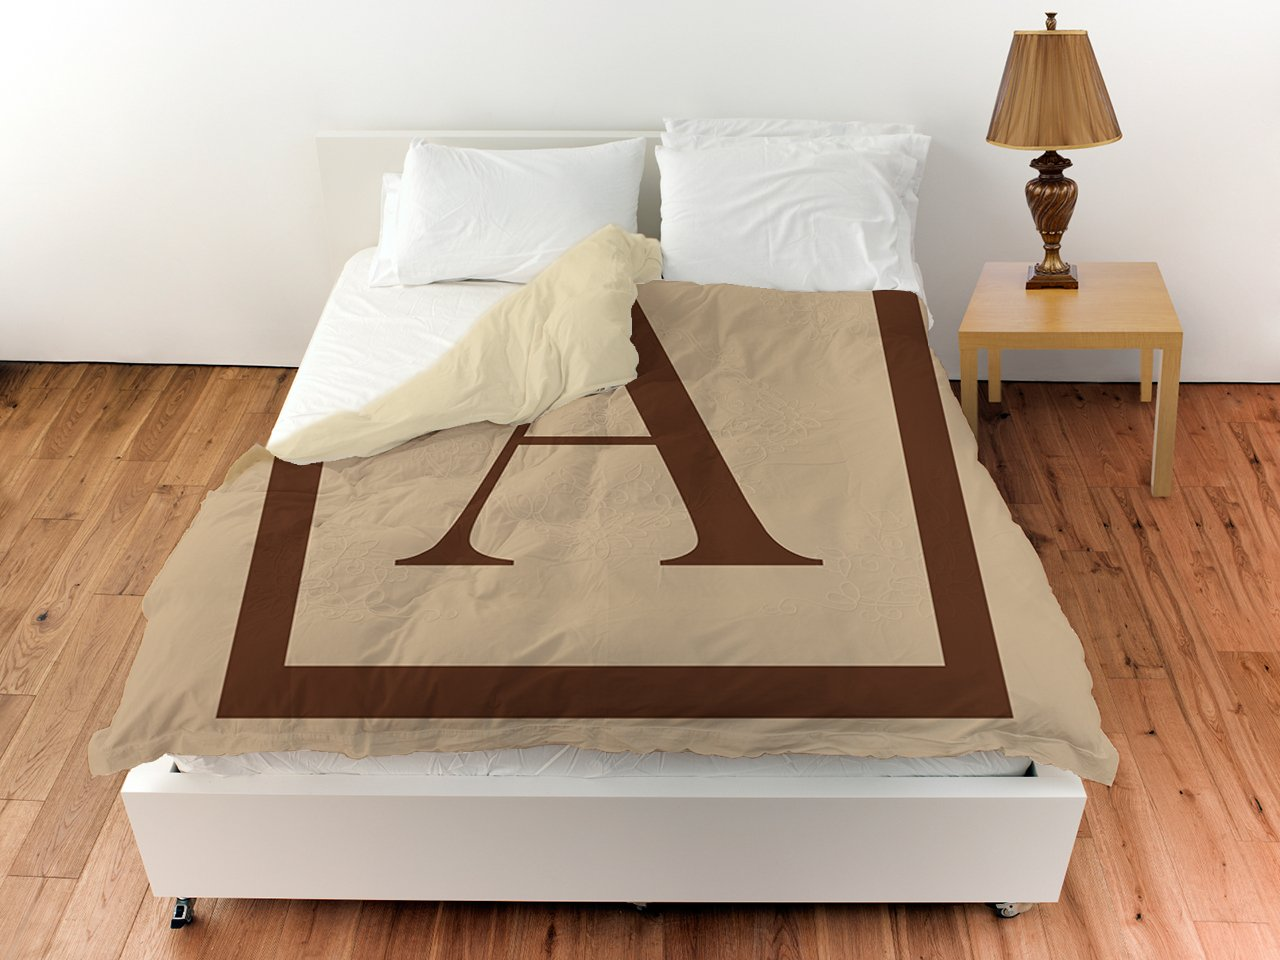 Manual Woodworkers & Weavers Duvet Cover, Queen/Full, Monogrammed Letter A, Caramel Classic Block